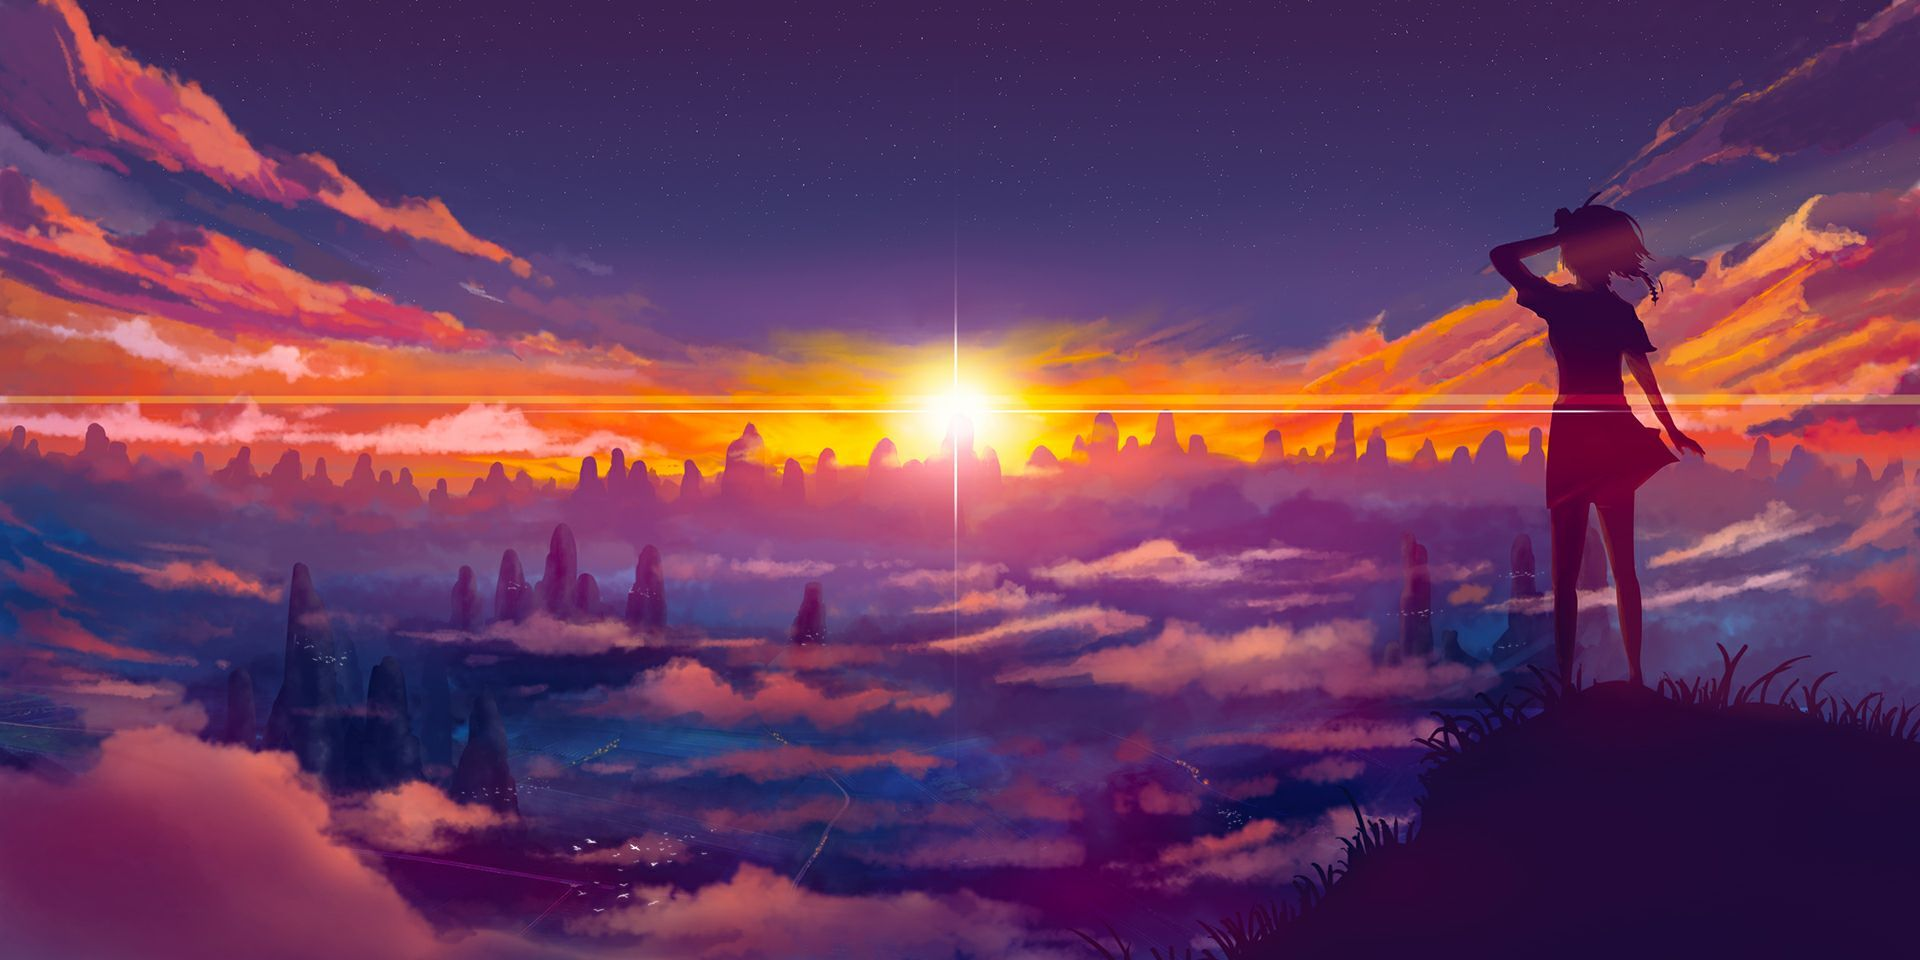 Legends Of The Past Keith X Reader Anime Scenery Anime Scenery Wallpaper Scenery Wallpaper